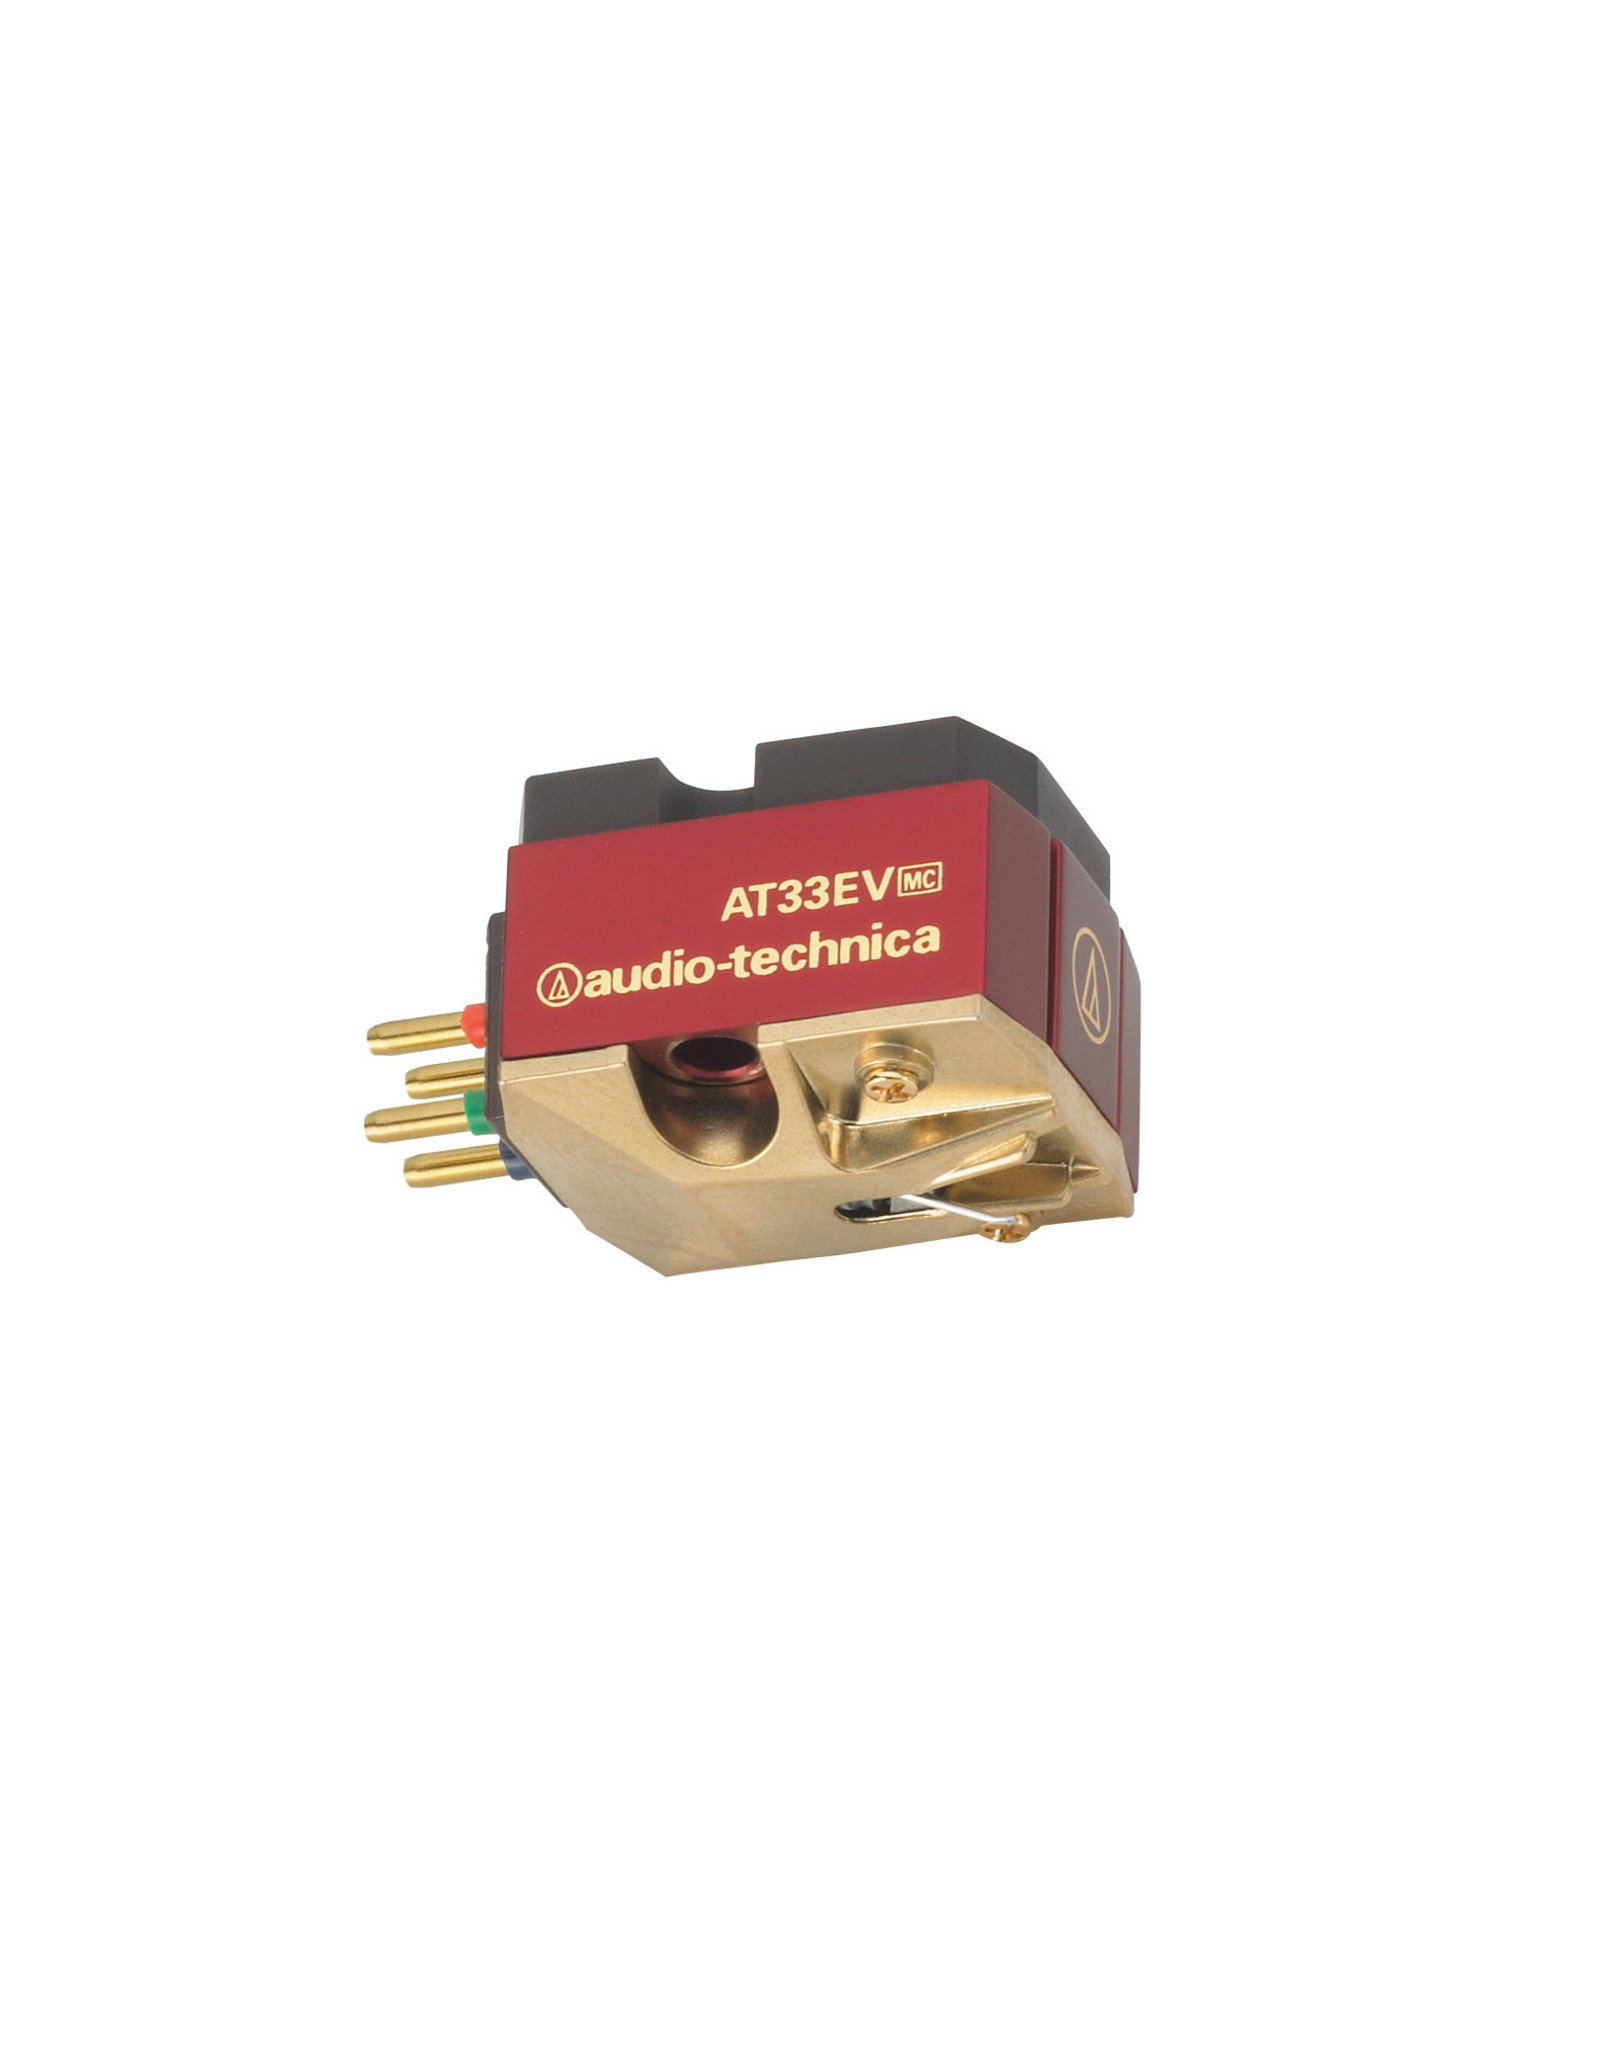 Audio-Technica Audio-Technica AT33EV Elliptical MC Phono Cartridge